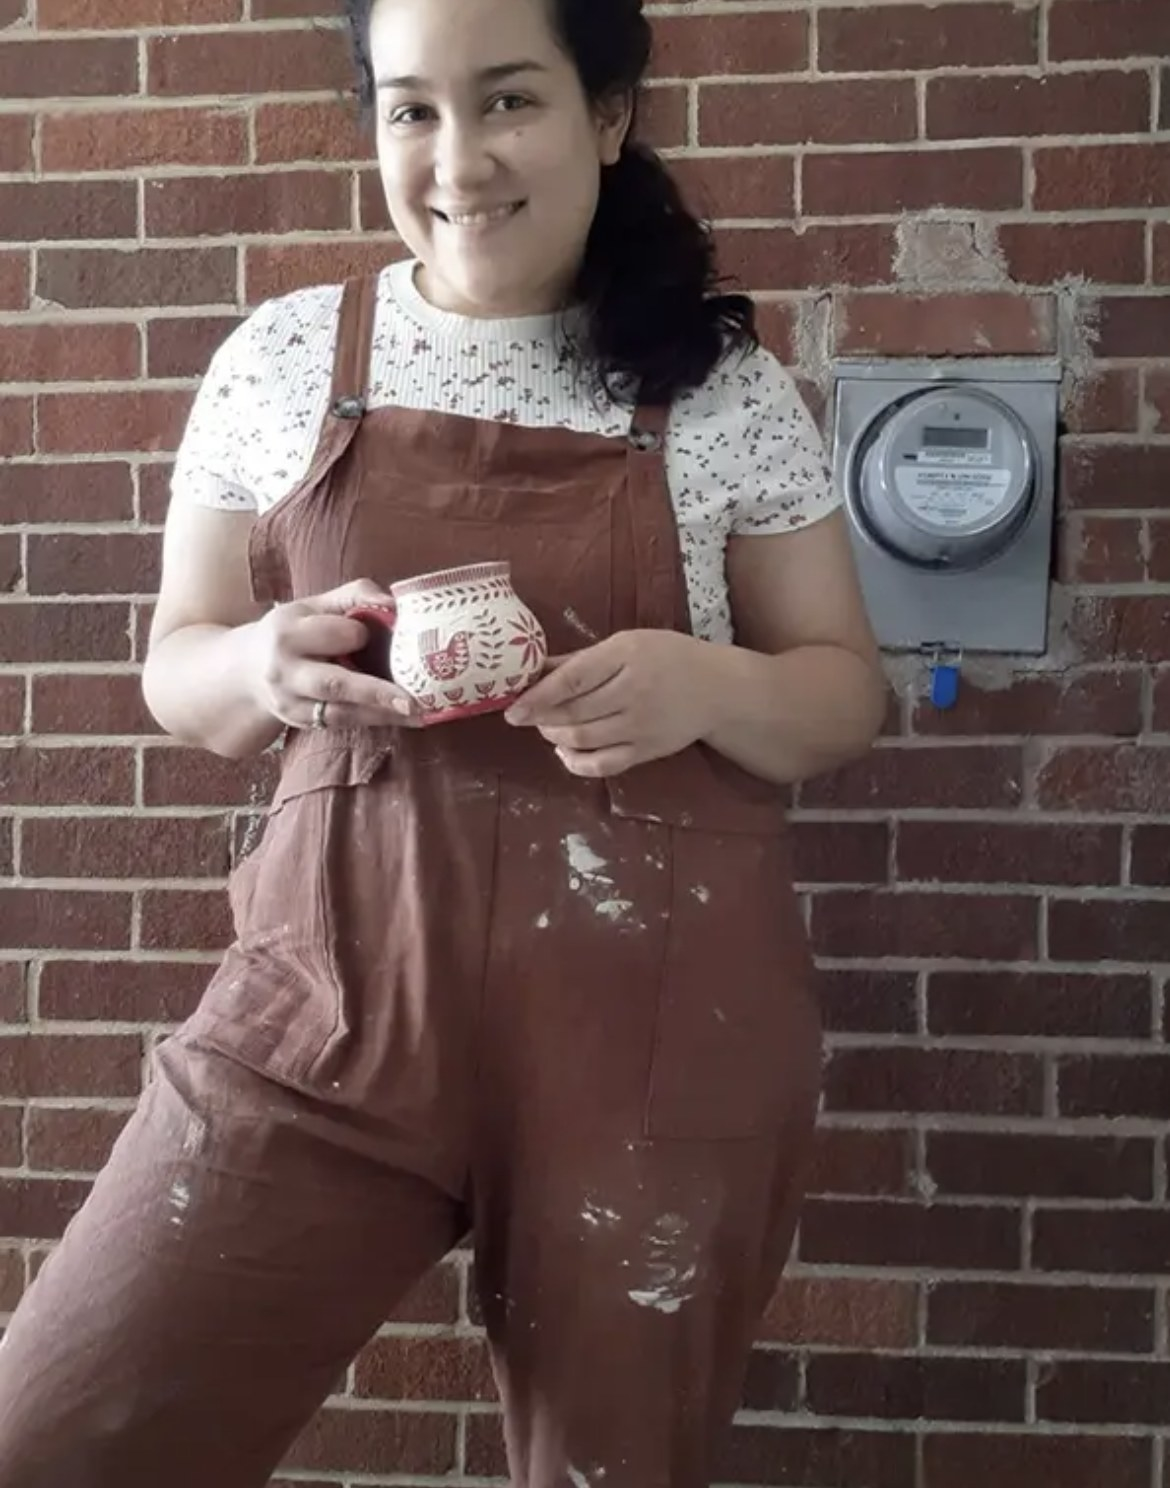 Person is wearing a pair of mauve overalls and a white top